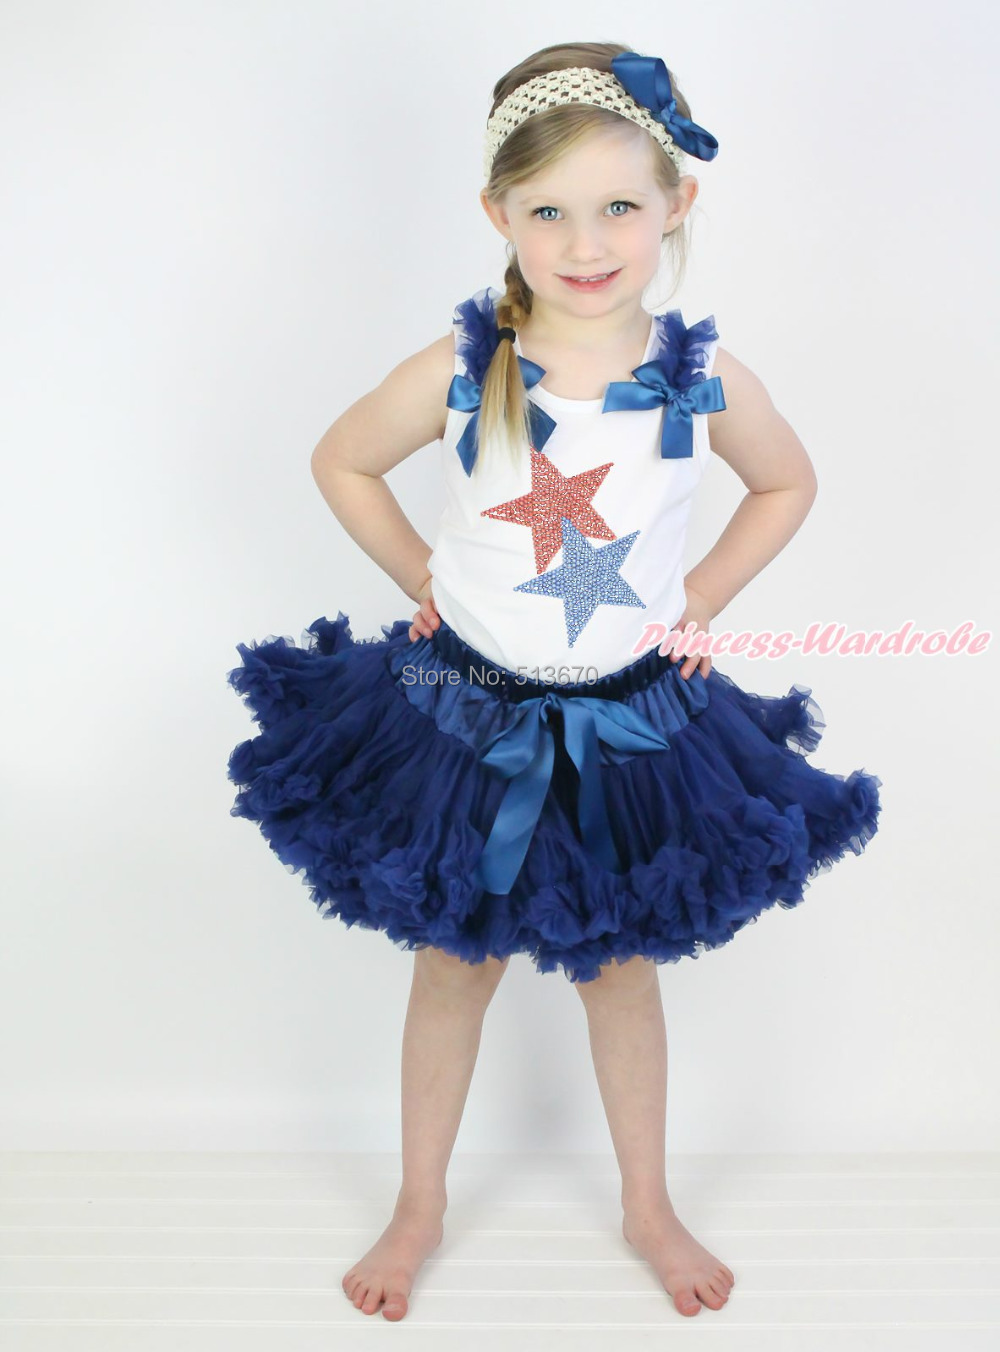 ФОТО 4th July Patriotic Rhinestone Star White Pettitop Top Shirt Navy Blue Bow Pettiskirt Dress Set 1-8Y MAPSA0529